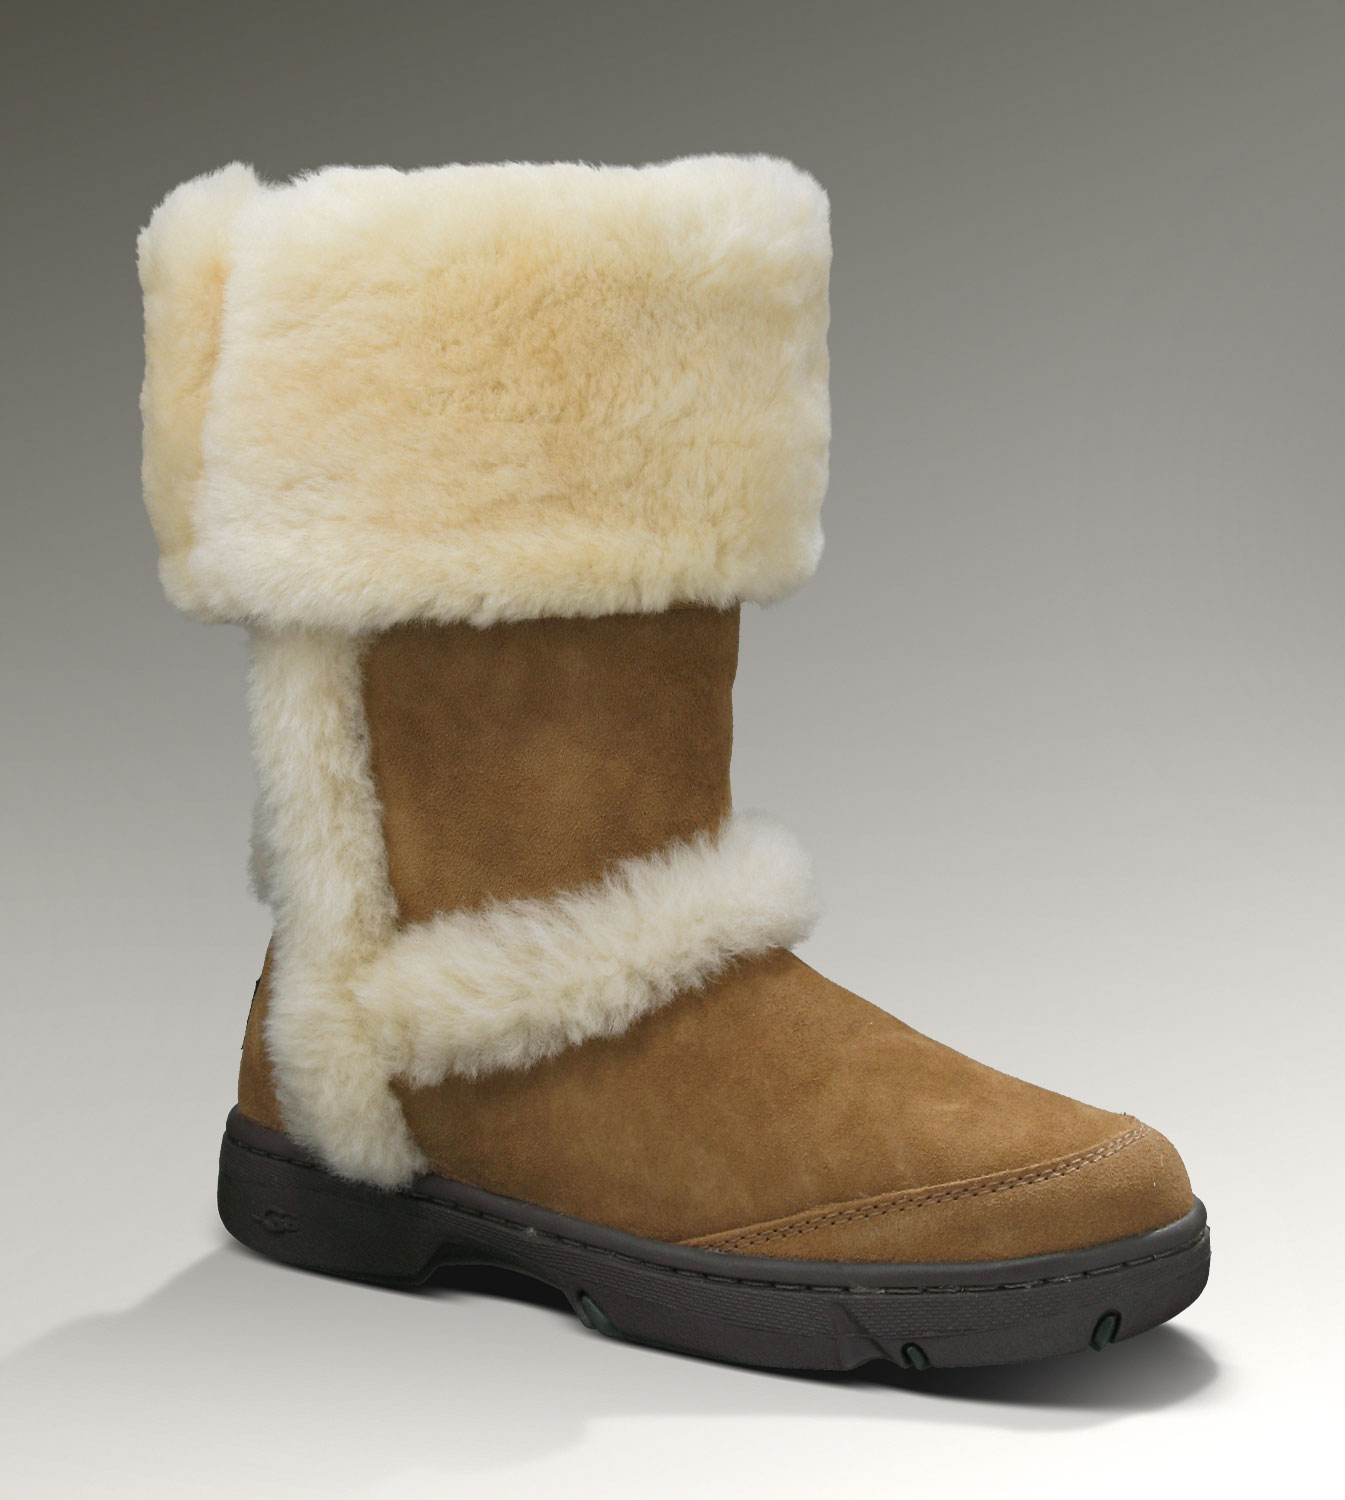 UGG Sunburst Tall 5218 Chestnut Boots